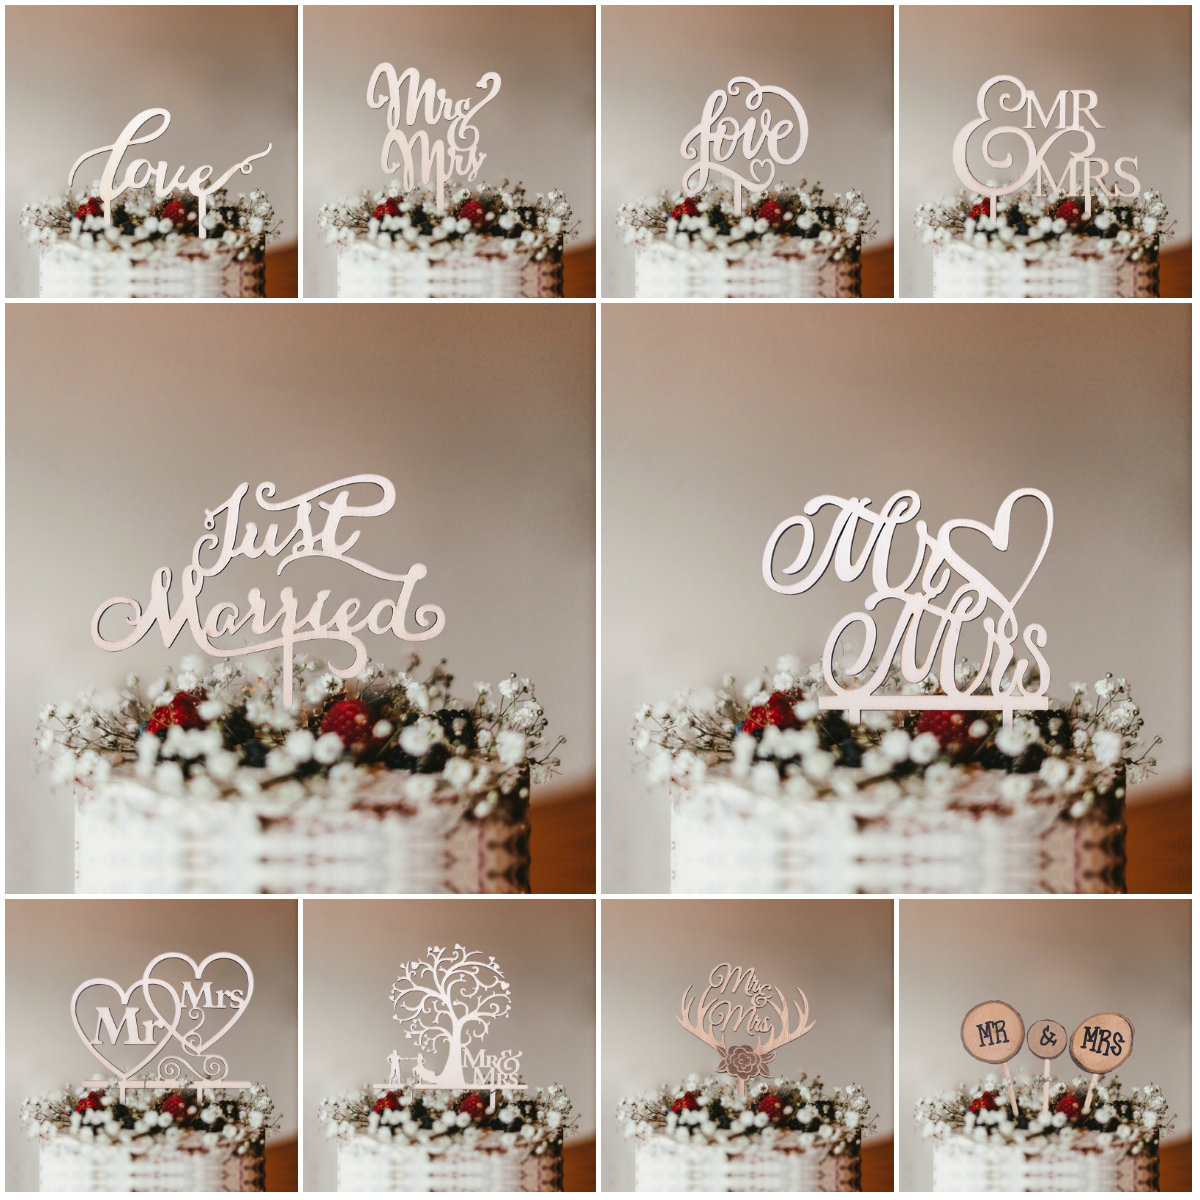 1Pcs Wooden Love Just Married Mr&Mrs Cake Topper DIY Wedding Cake Topper Engagement Gifts Letter Cake Decoration Supplies Favors(China)